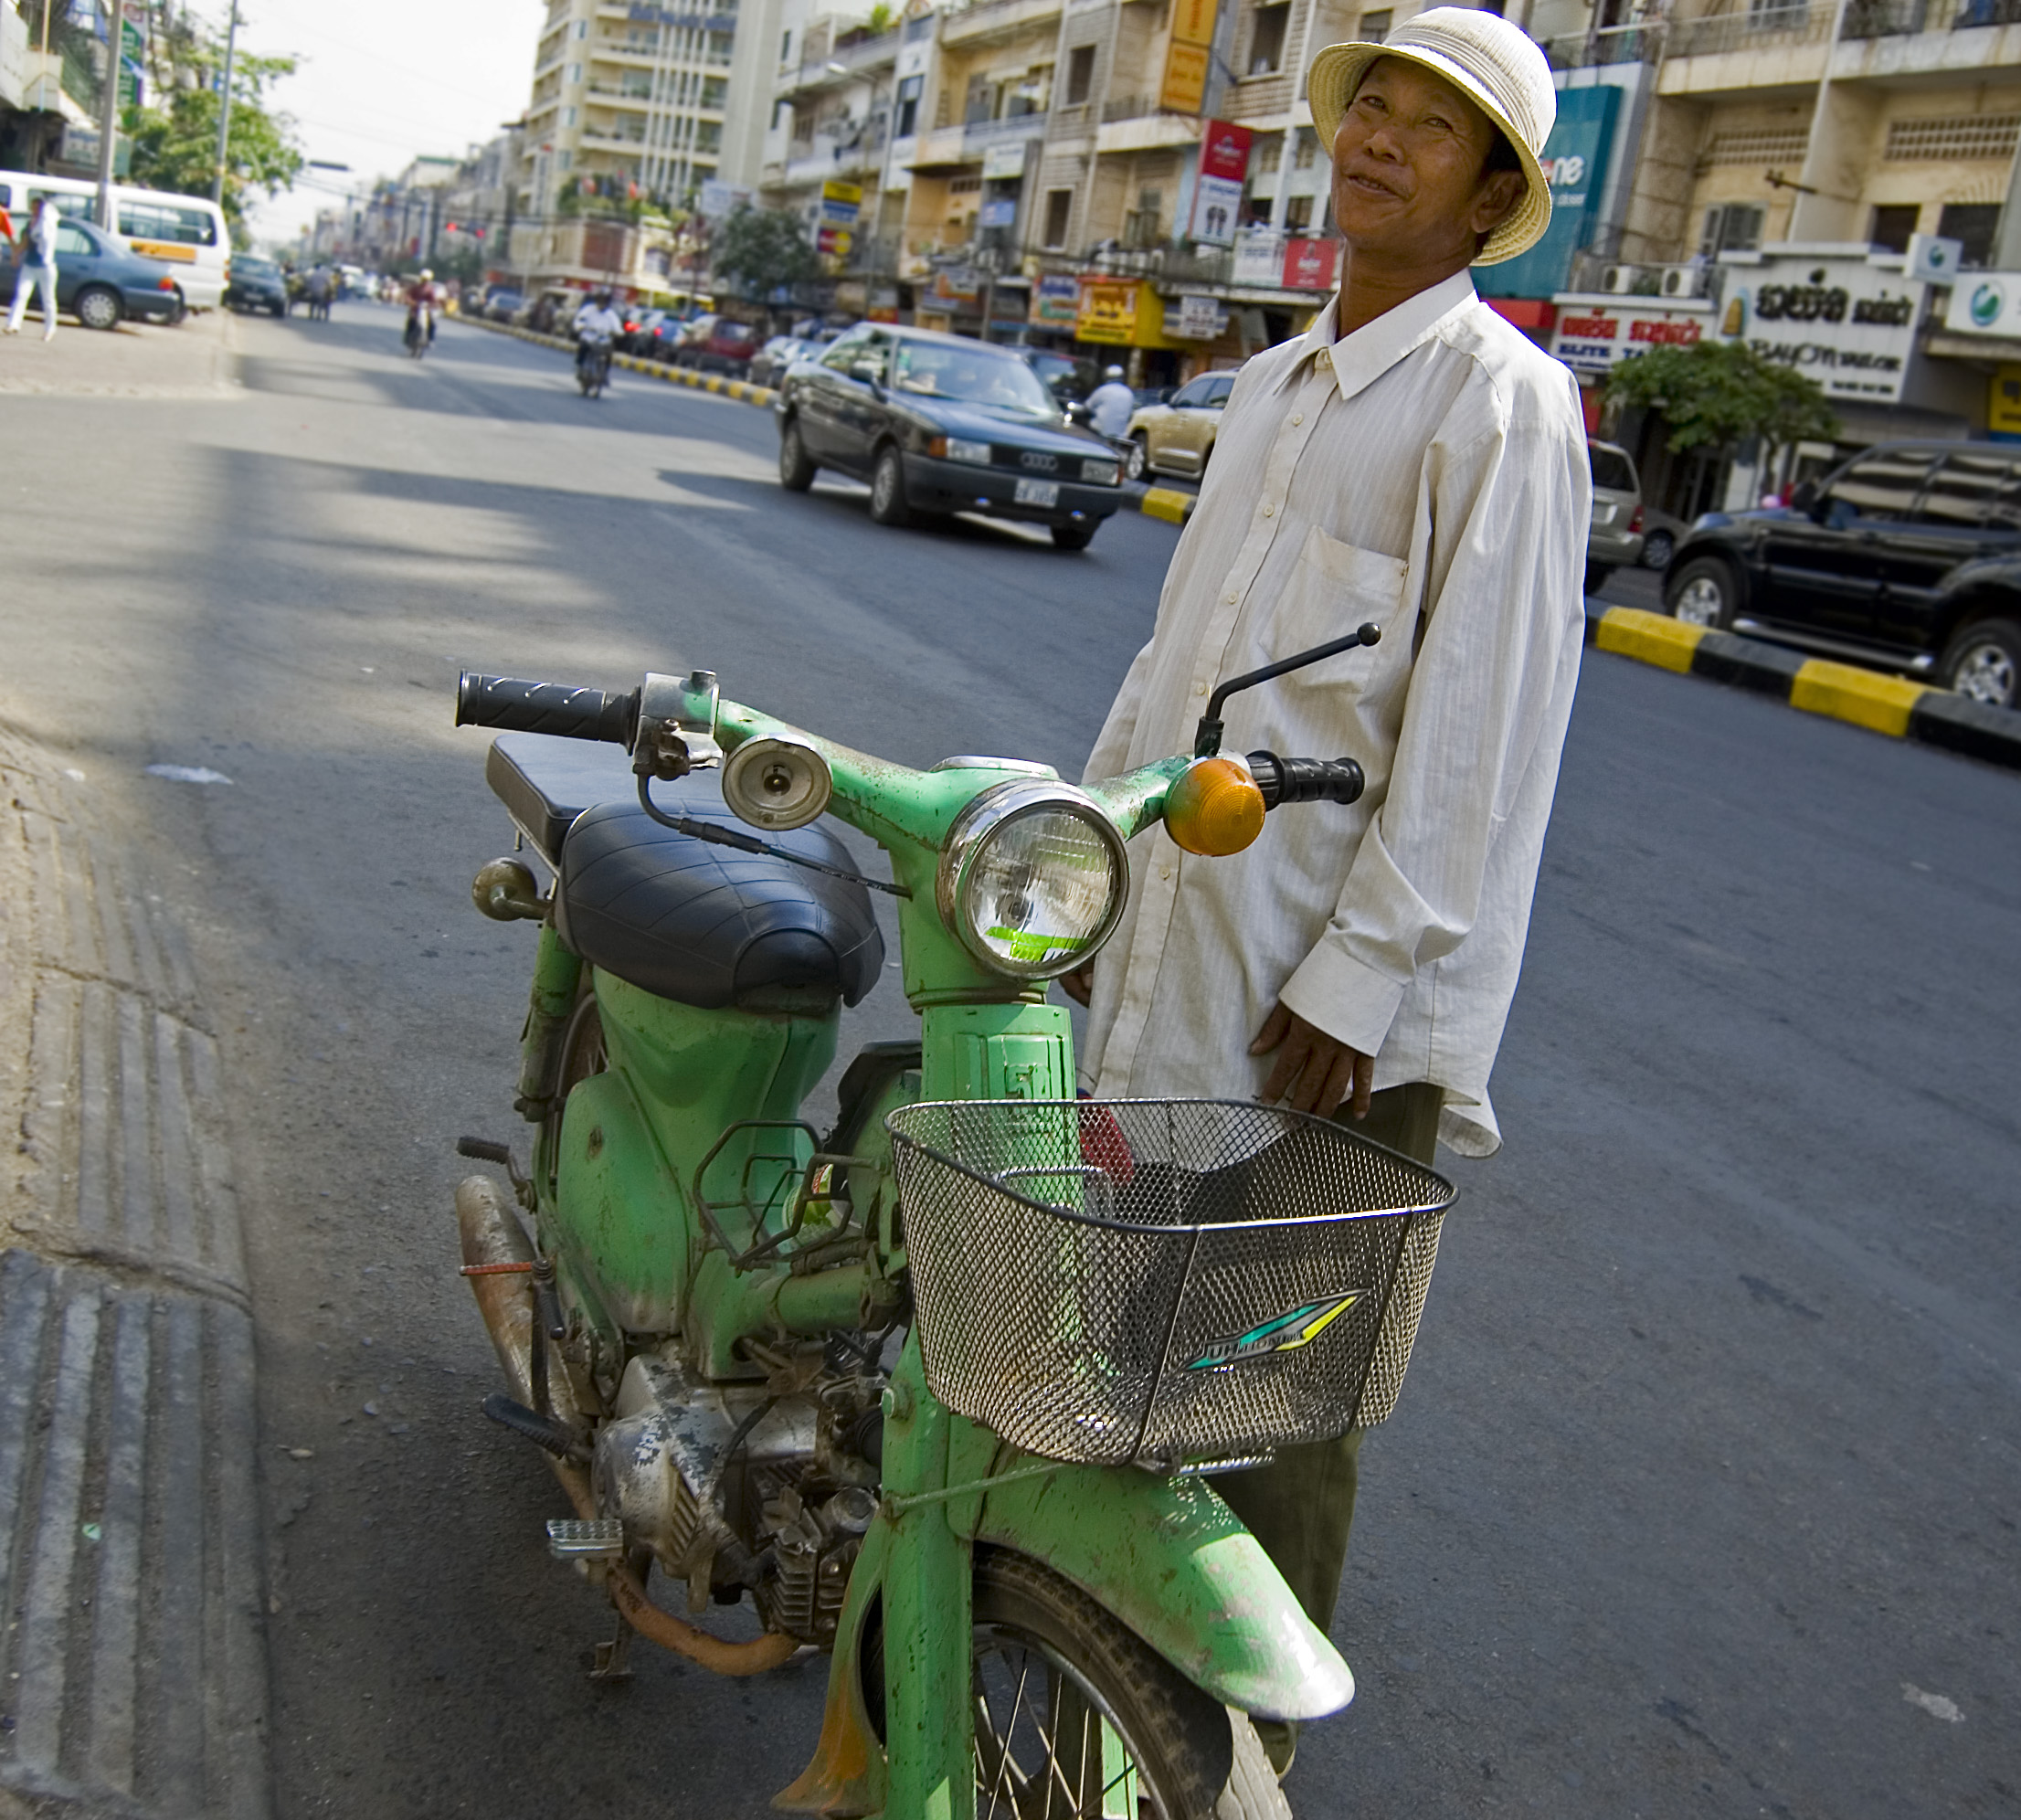 Moto taxi driver in front of some apartments in Phnom Penh, Cambodia